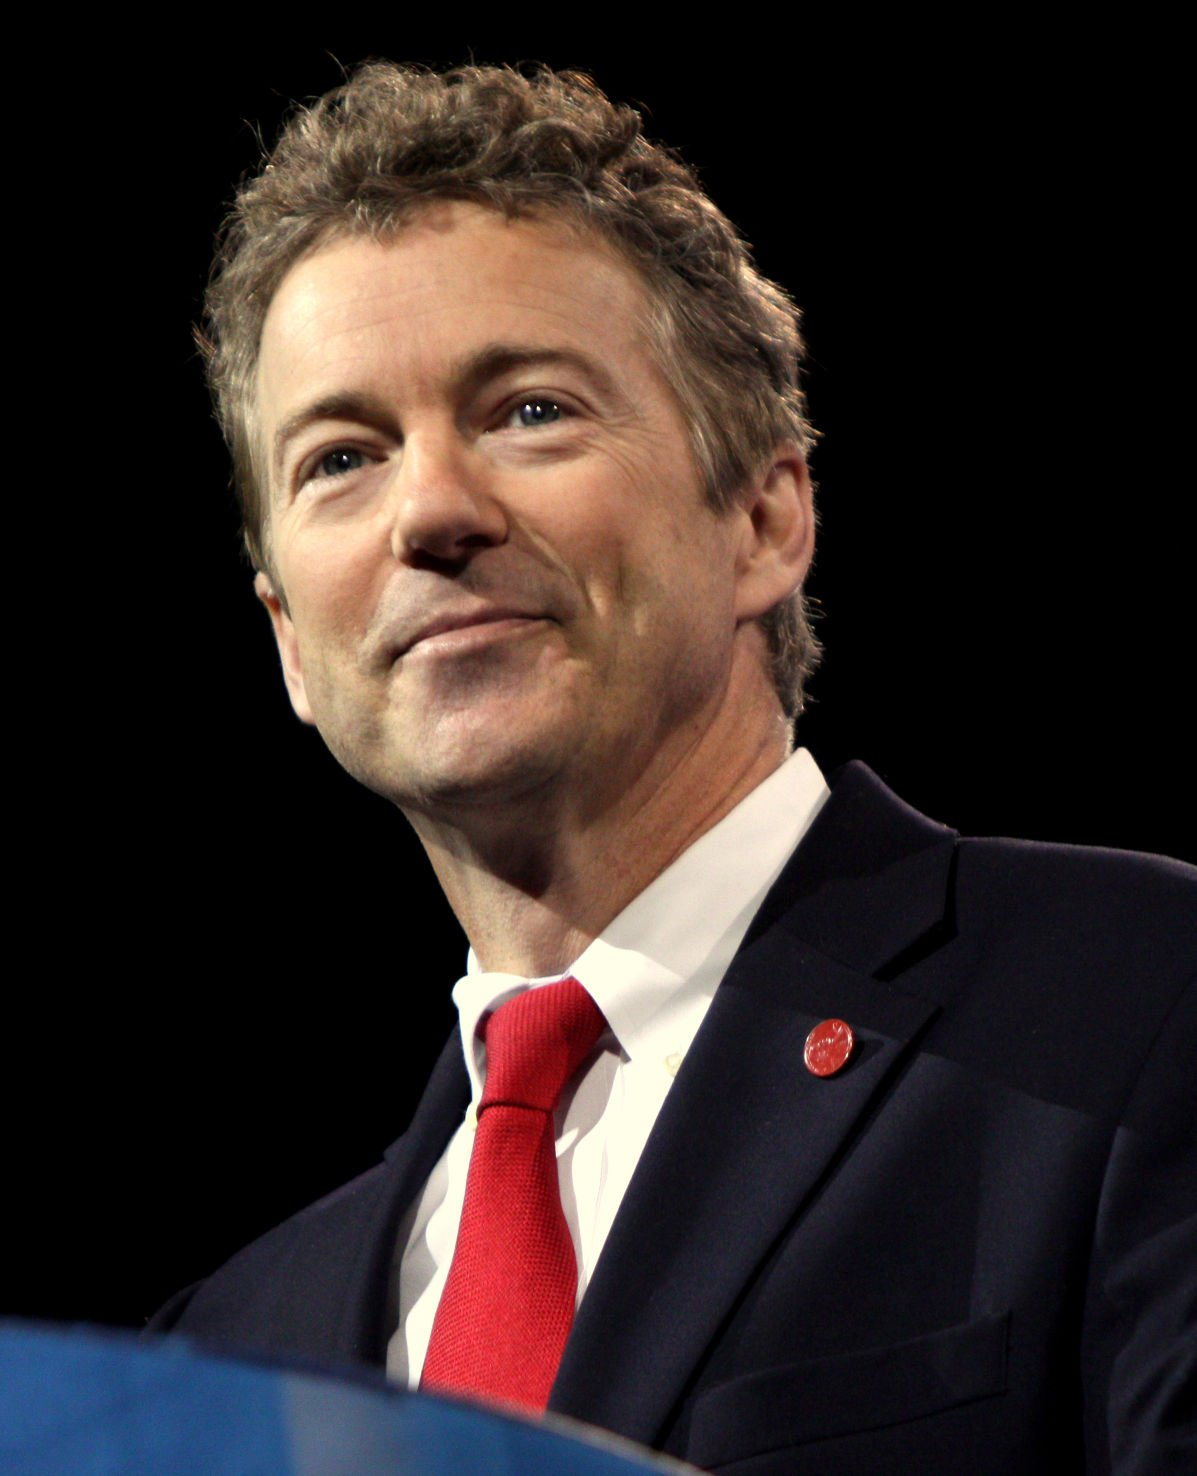 Rand Paul delivers letter from Trump to Putin in Russia | McClatchy Washington Bureau